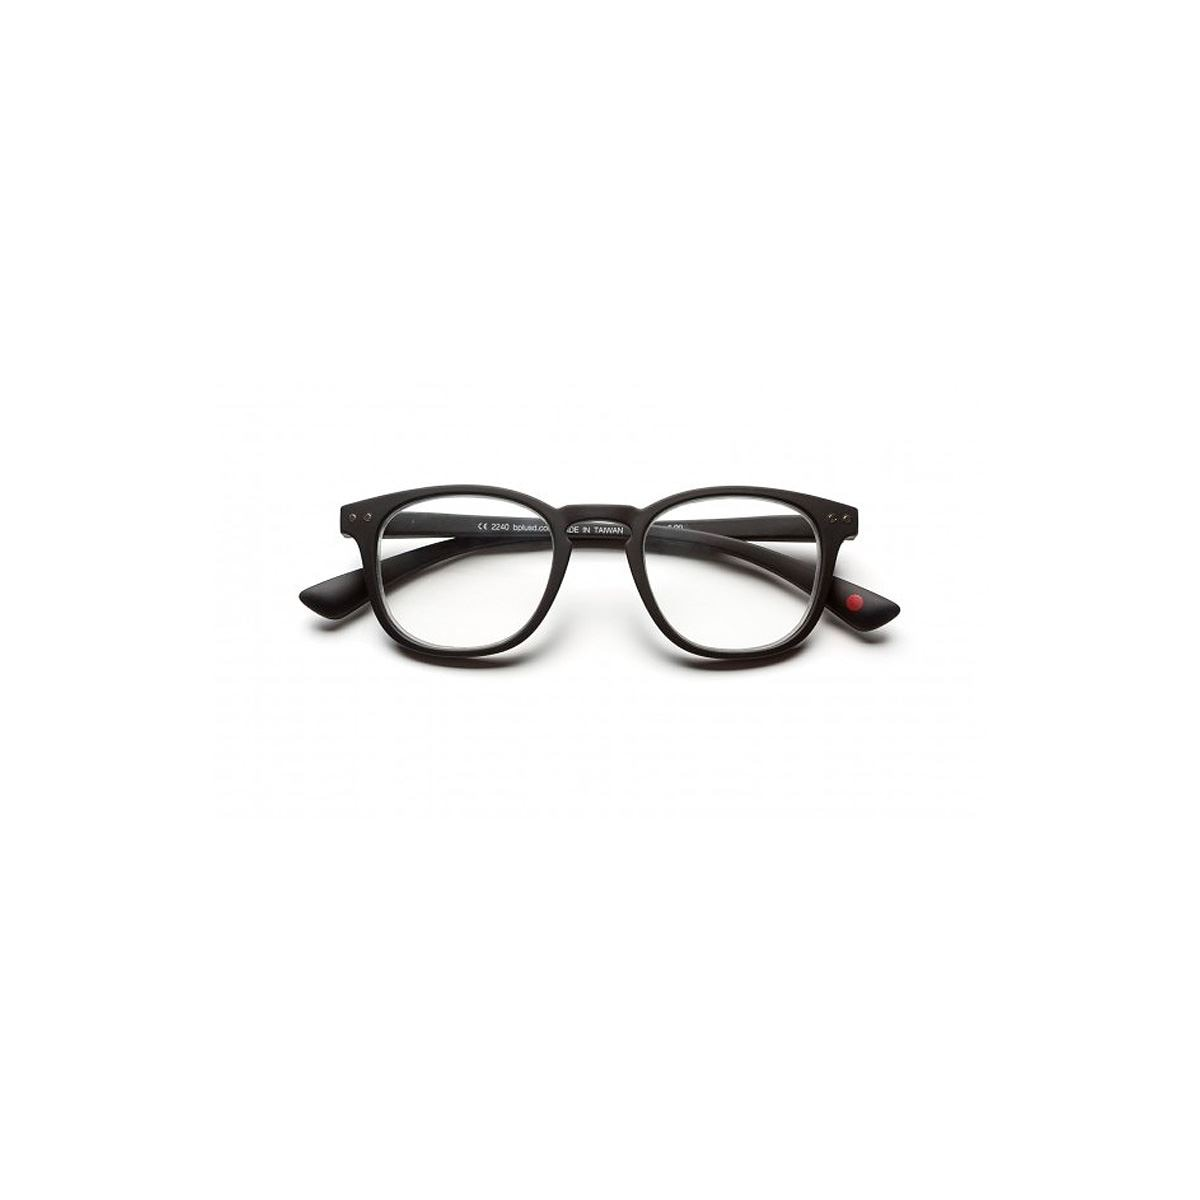 Lentes pre graduados dot reader matt black  +2.00  - Sanborns